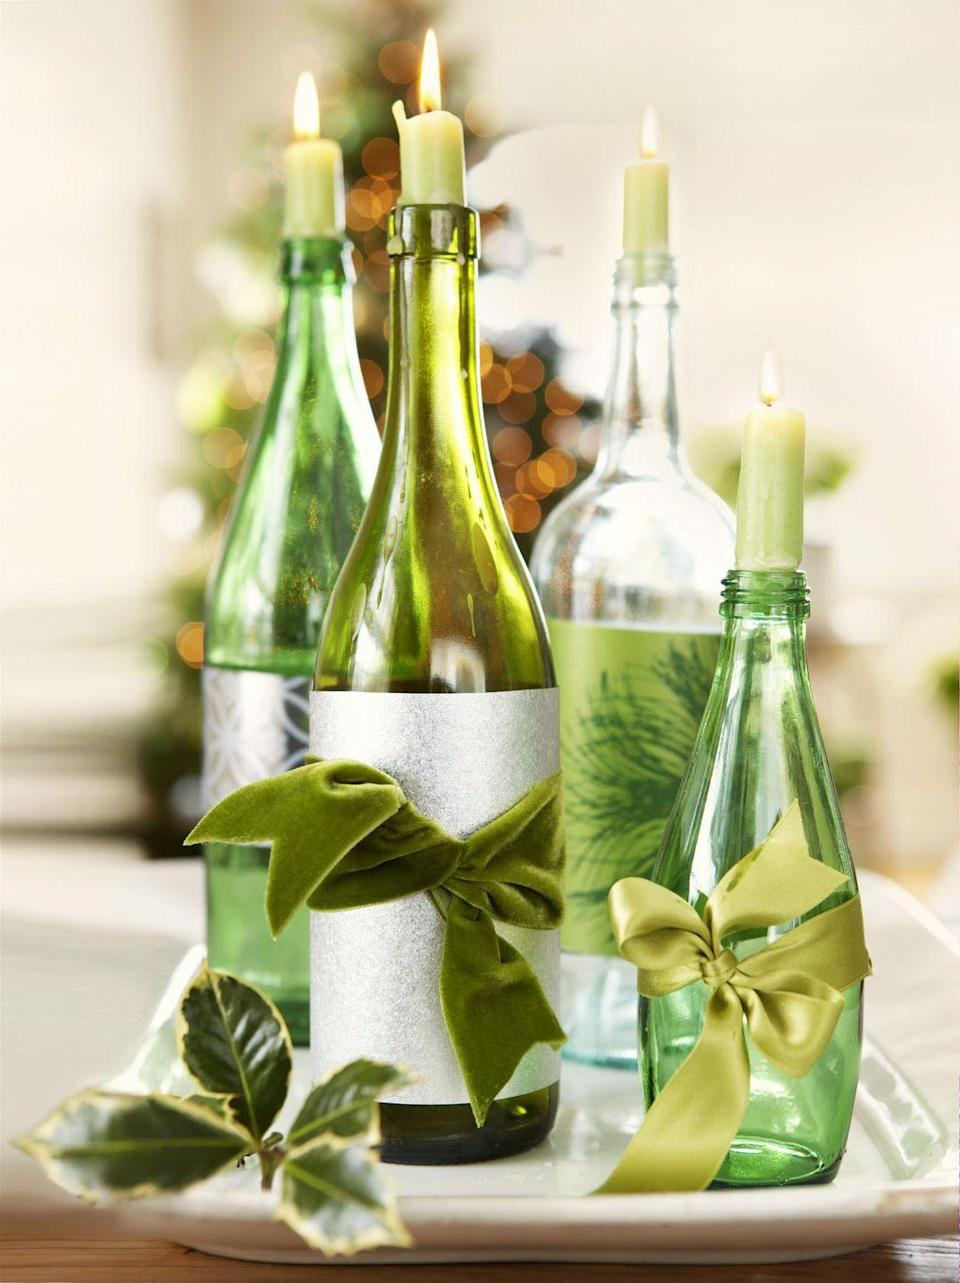 """<p>Empty bottles become holiday-ready candleholders with some silvery wrapping paper and lush green ribbons.</p><p><a class=""""link rapid-noclick-resp"""" href=""""https://www.amazon.com/Colonial-Candle-Classic-Willow-Green/dp/B0085F24CE?tag=syn-yahoo-20&ascsubtag=%5Bartid%7C10055.g.2196%5Bsrc%7Cyahoo-us"""" rel=""""nofollow noopener"""" target=""""_blank"""" data-ylk=""""slk:SHOP GREEN CANDLES"""">SHOP GREEN CANDLES</a></p>"""